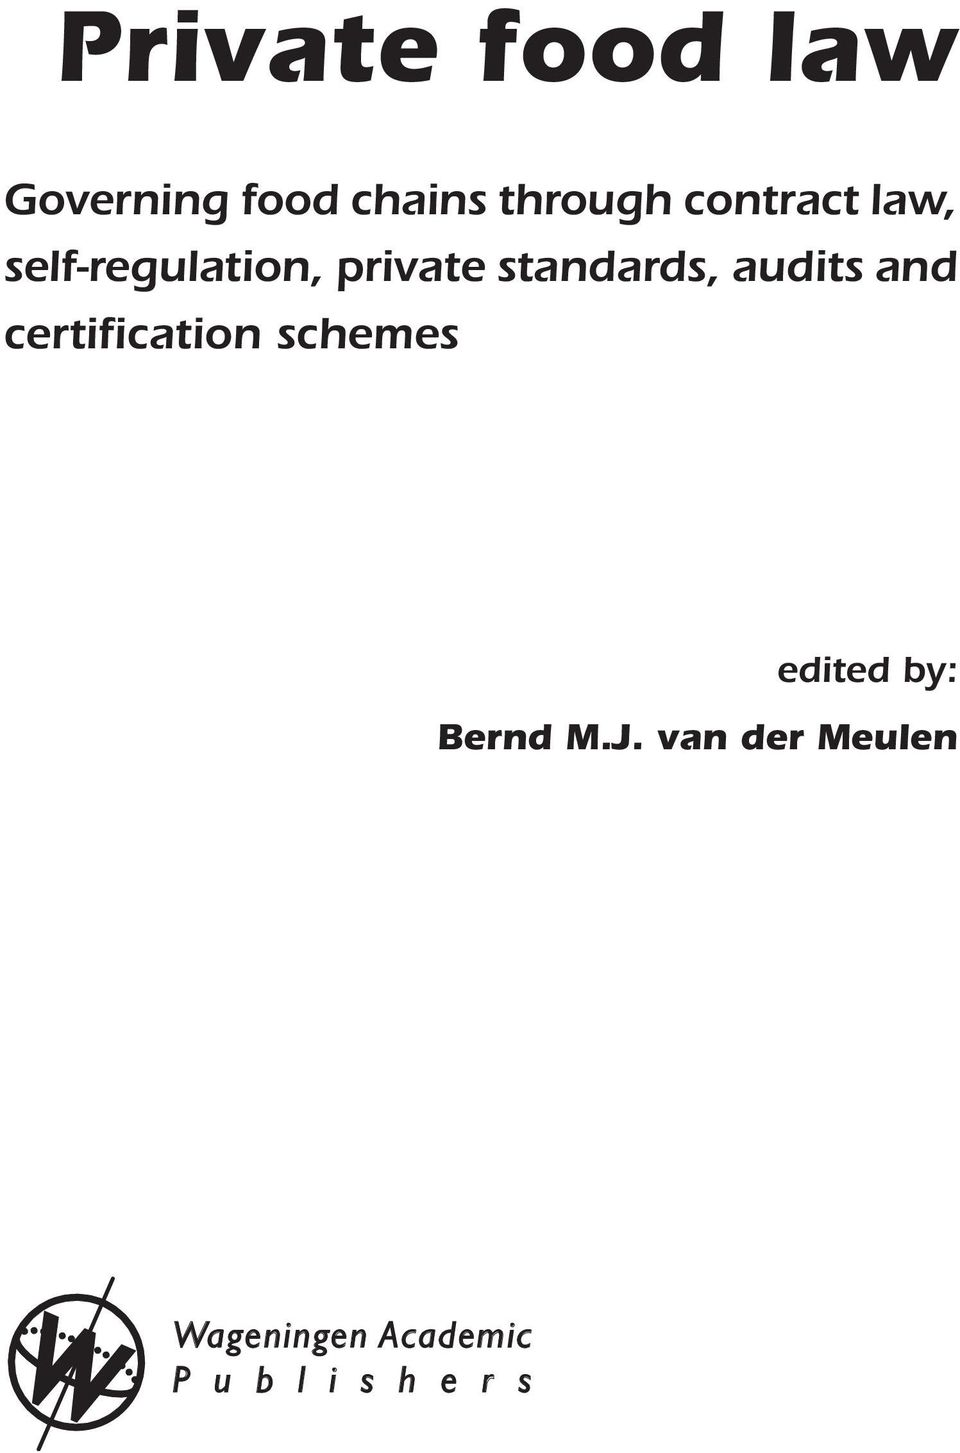 audits and certiication schemes edited by: Bernd M.